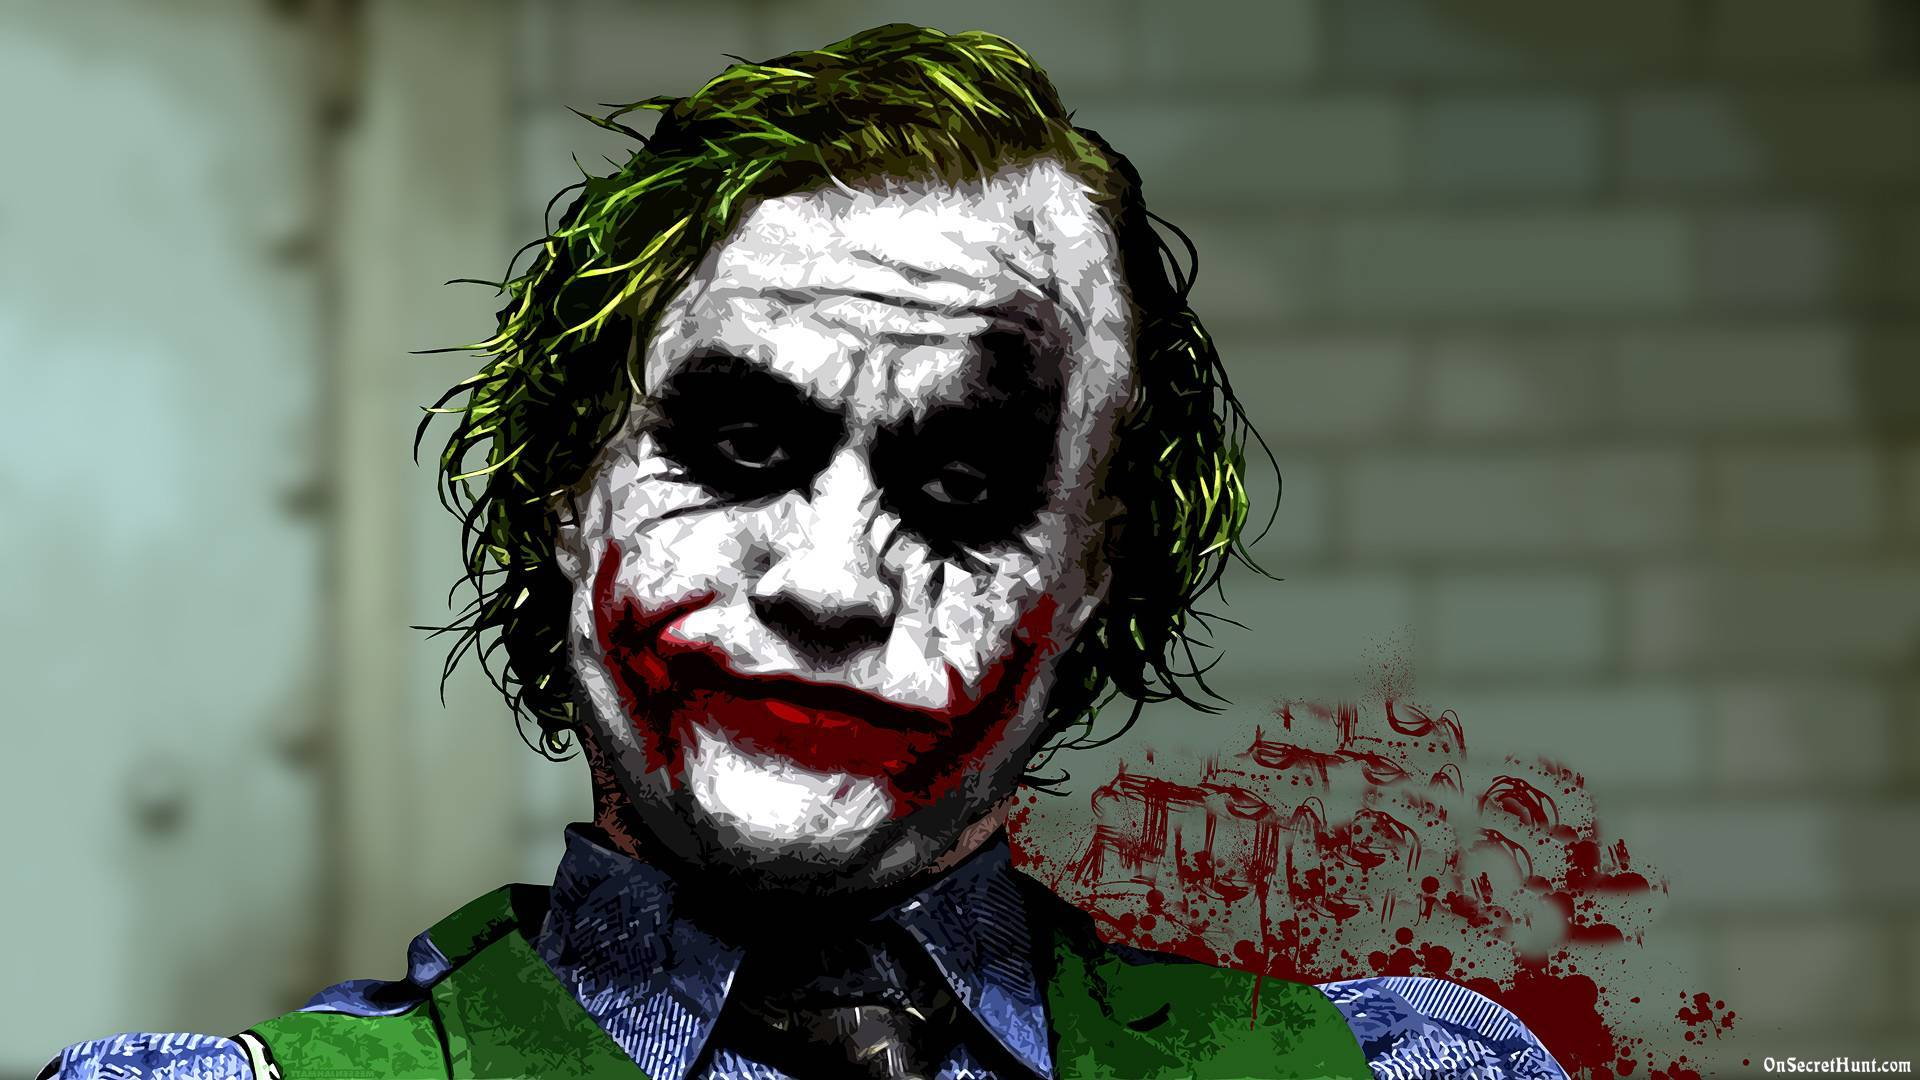 Download-Batman-Joker-Hd-1920x1080PX-wallpaper-wp3604977